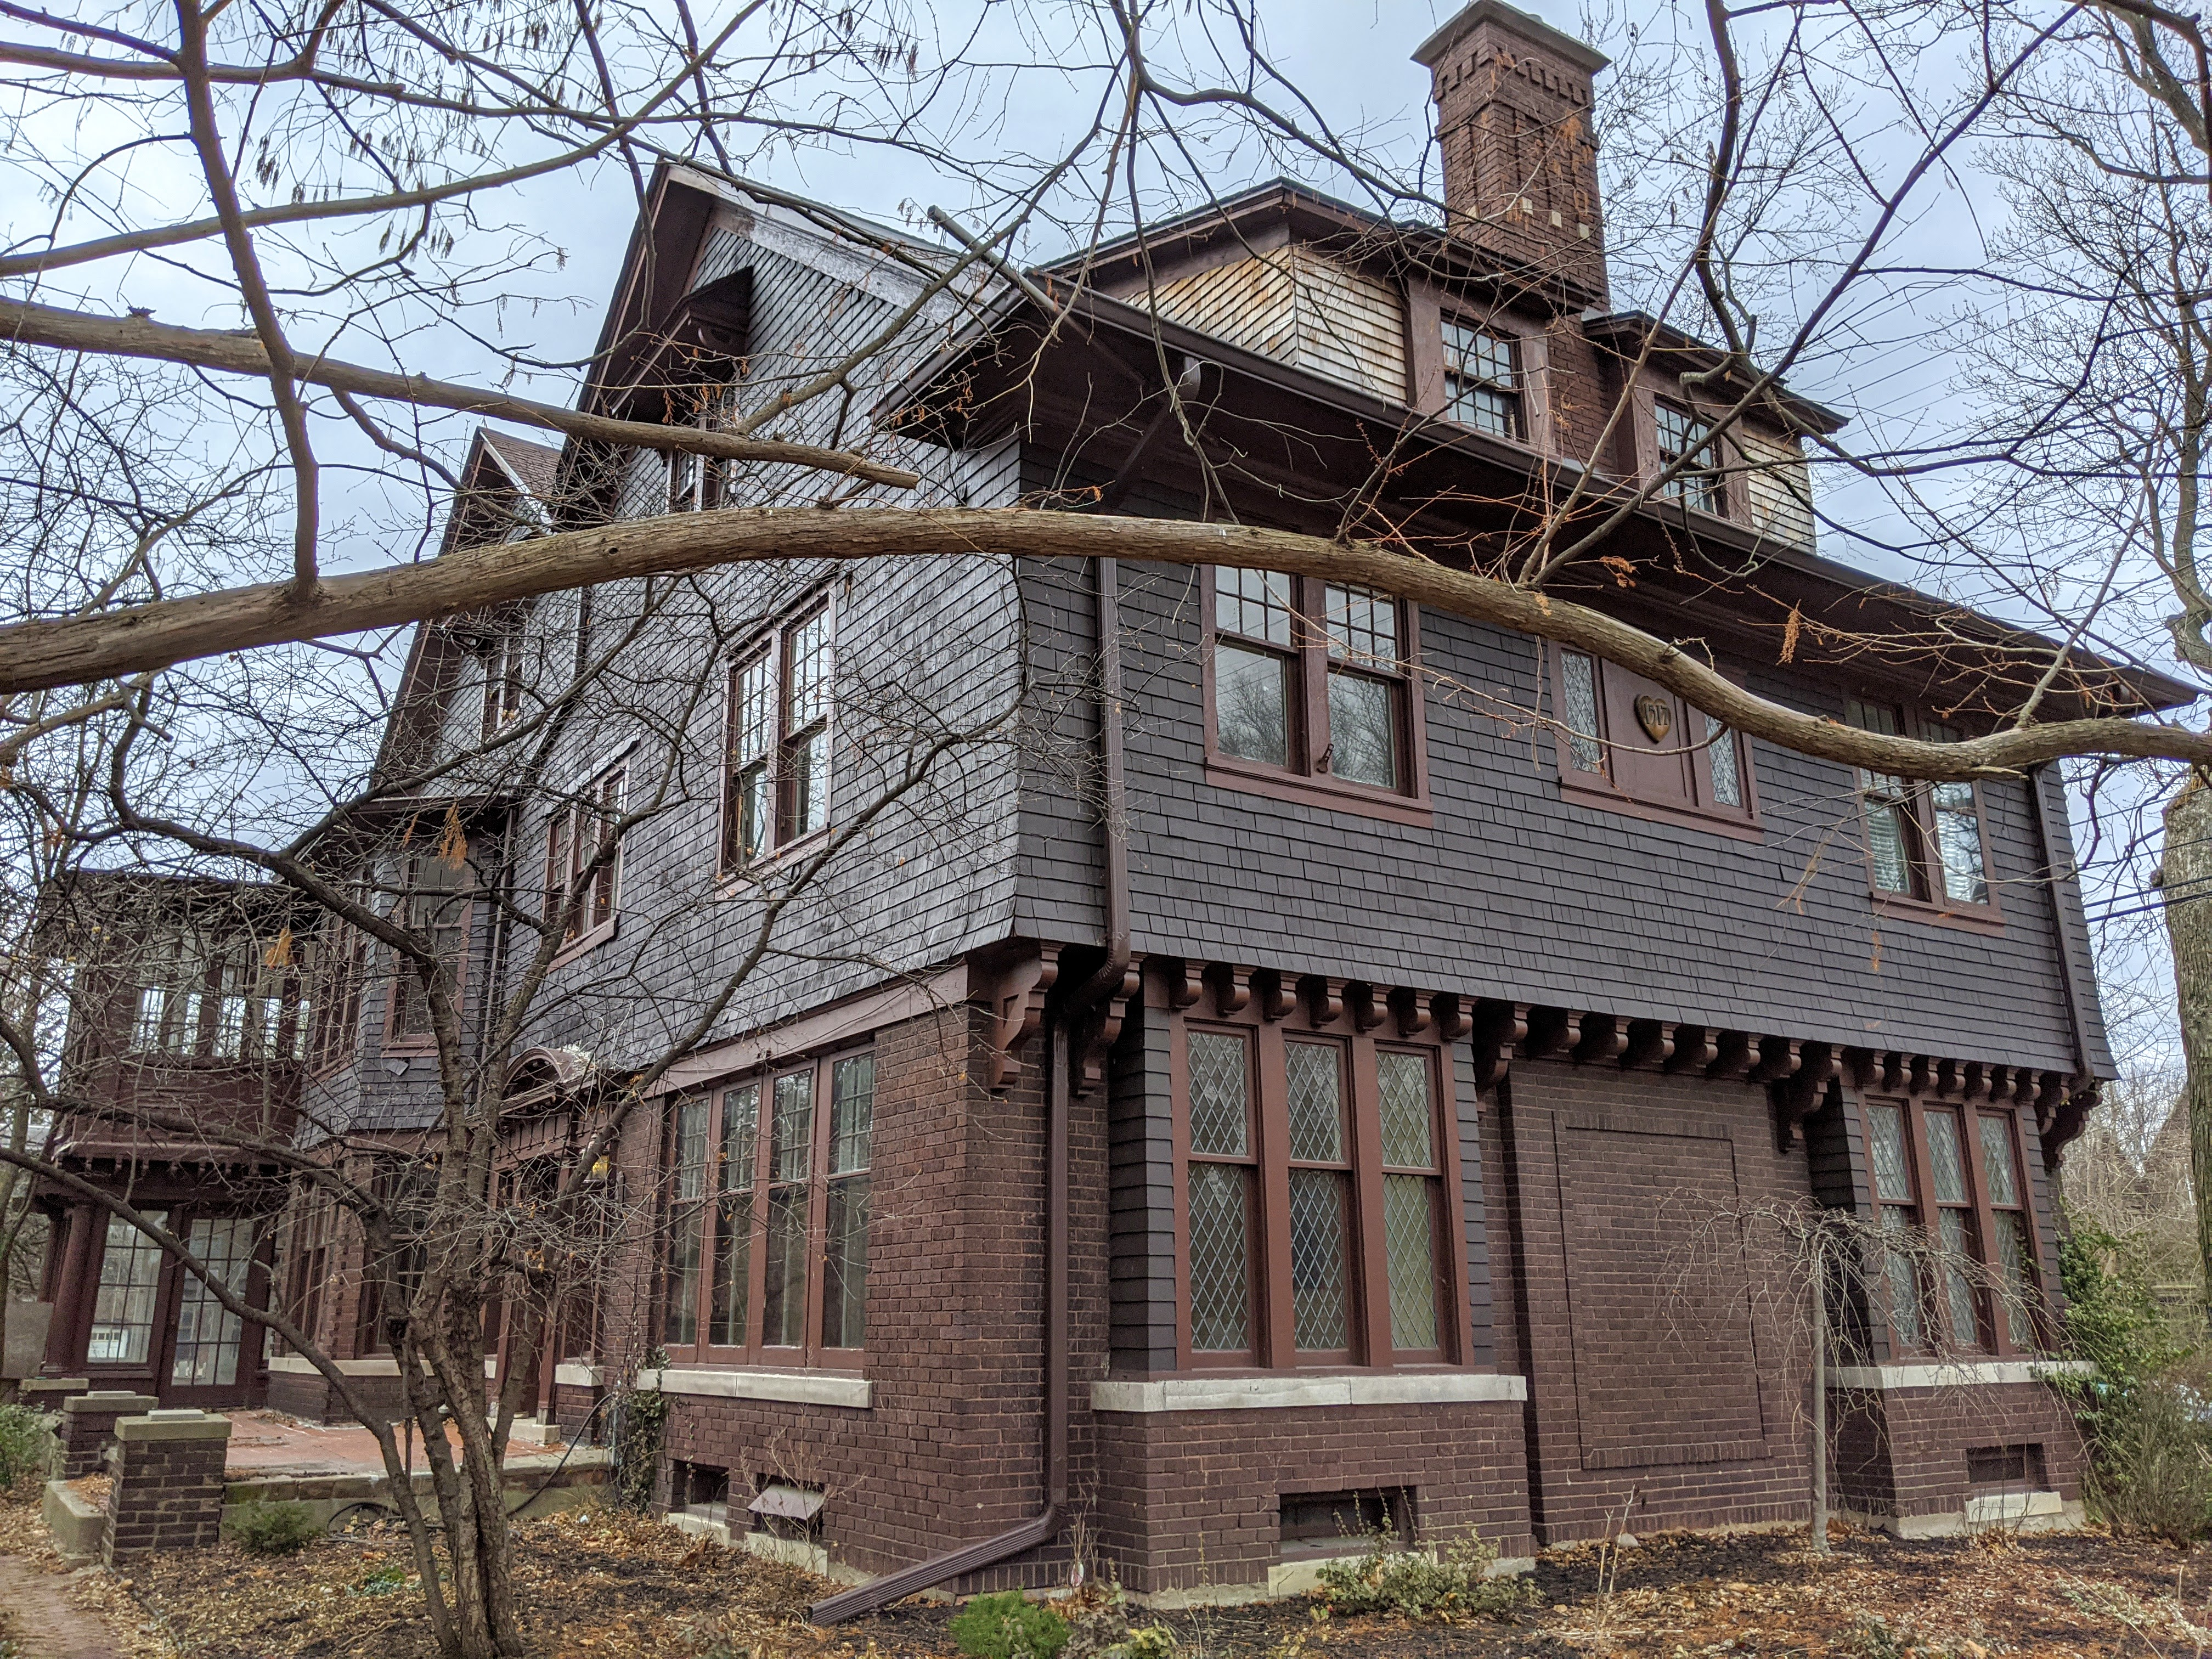 A long home with brick first floor and cedar shake siding over the second story.